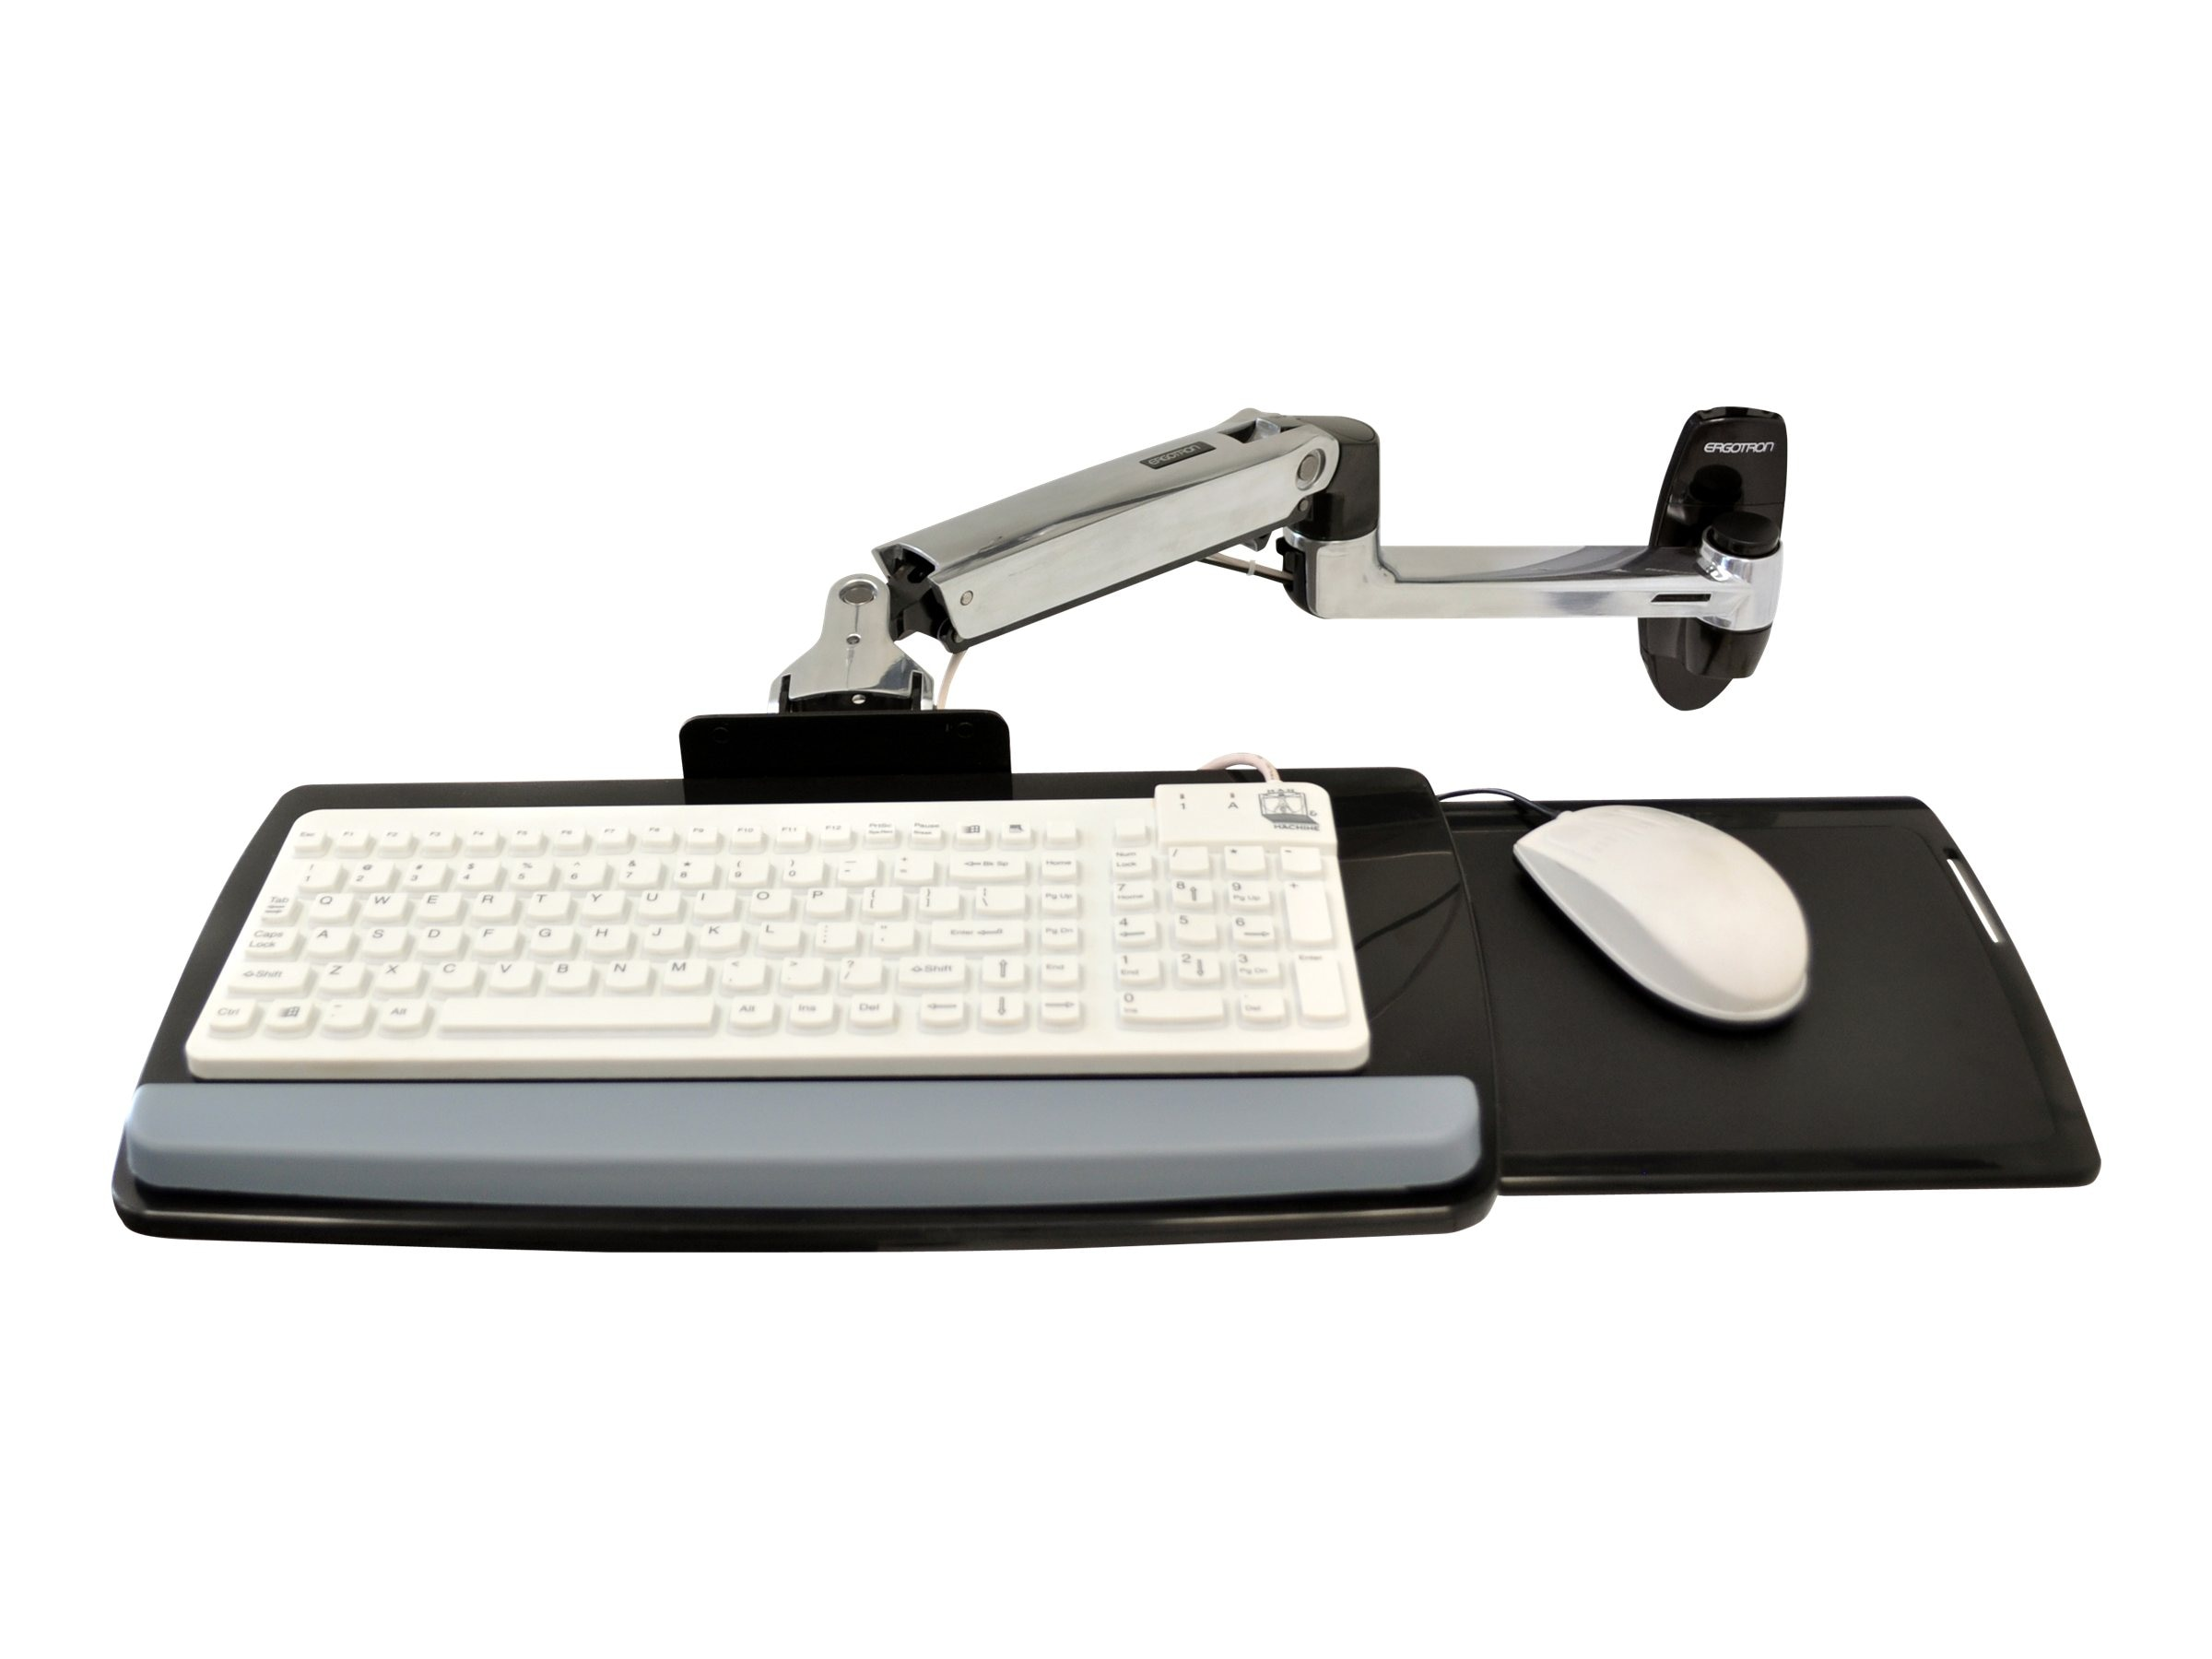 Ergotron LX Keyboard Arm Wall Mount, 45-246-026, 11157741, Mounting Hardware - Miscellaneous